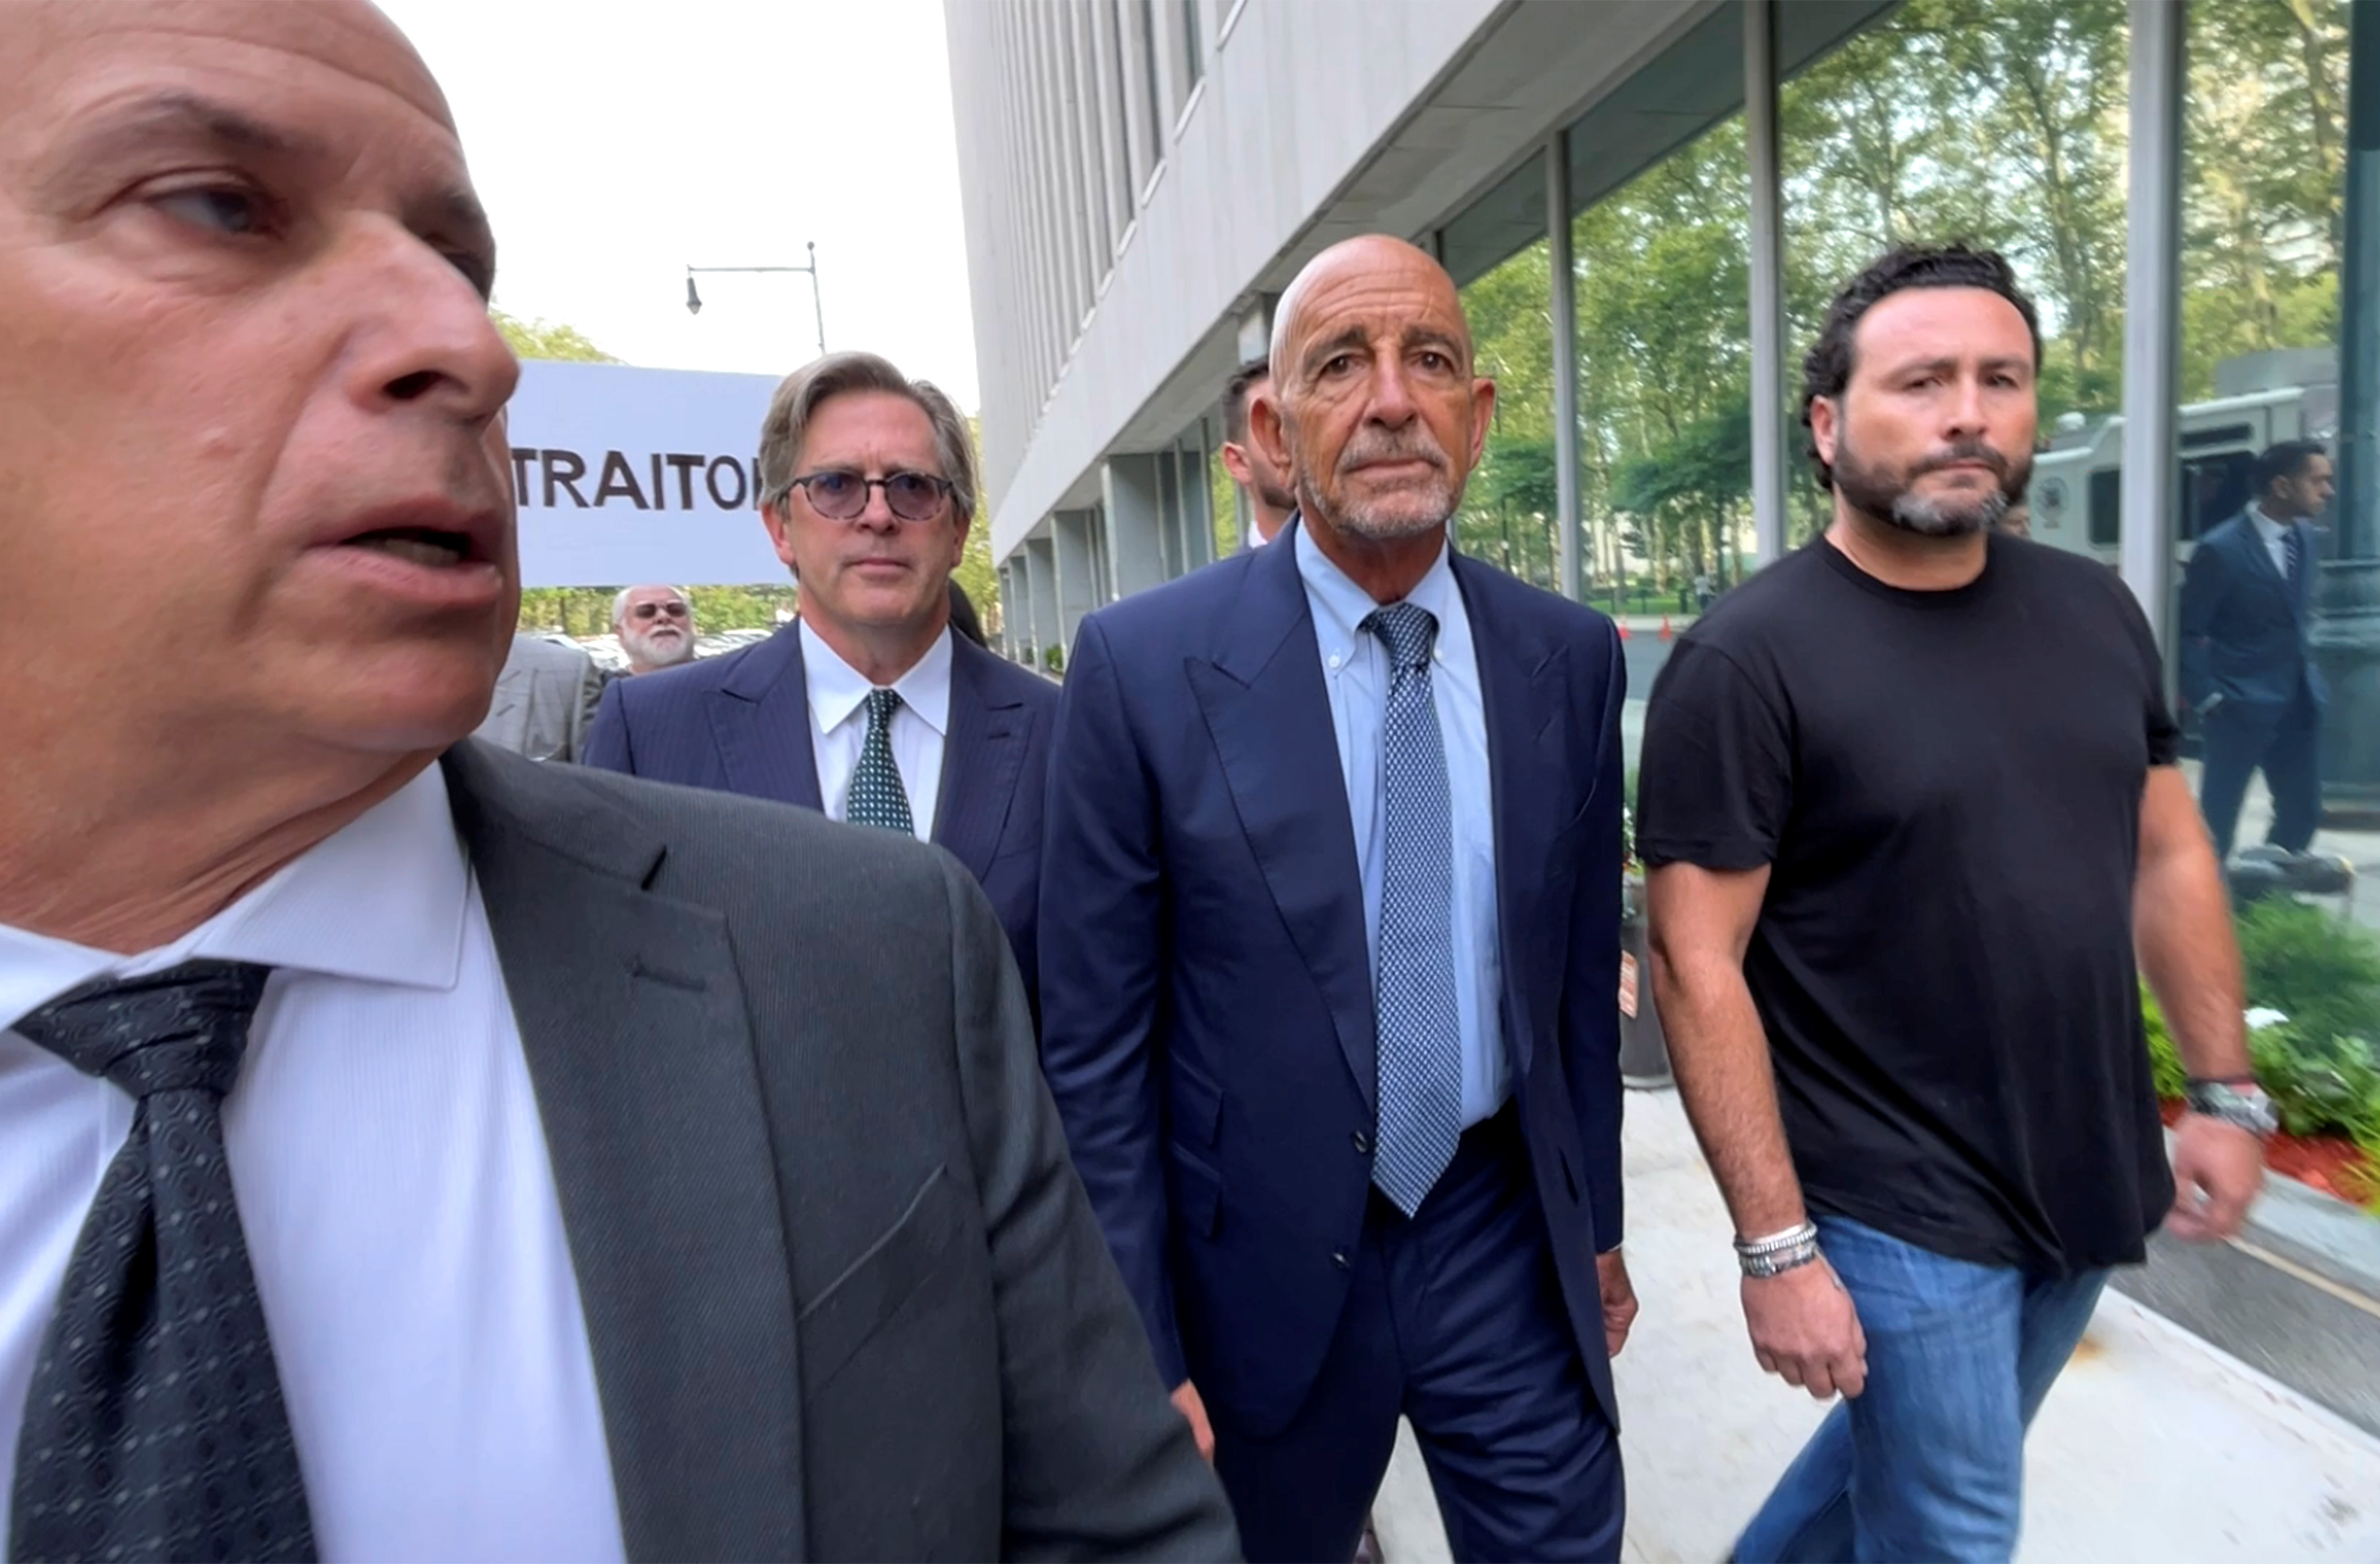 Thomas Barrack, a billionaire friend of Donald Trump who chaired the former President's inaugural fund, arrives at the Brooklyn Federal Courthouse in Brooklyn, New York, U.S., July 26, 2021.  REUTERS/Andrew Hofstetter